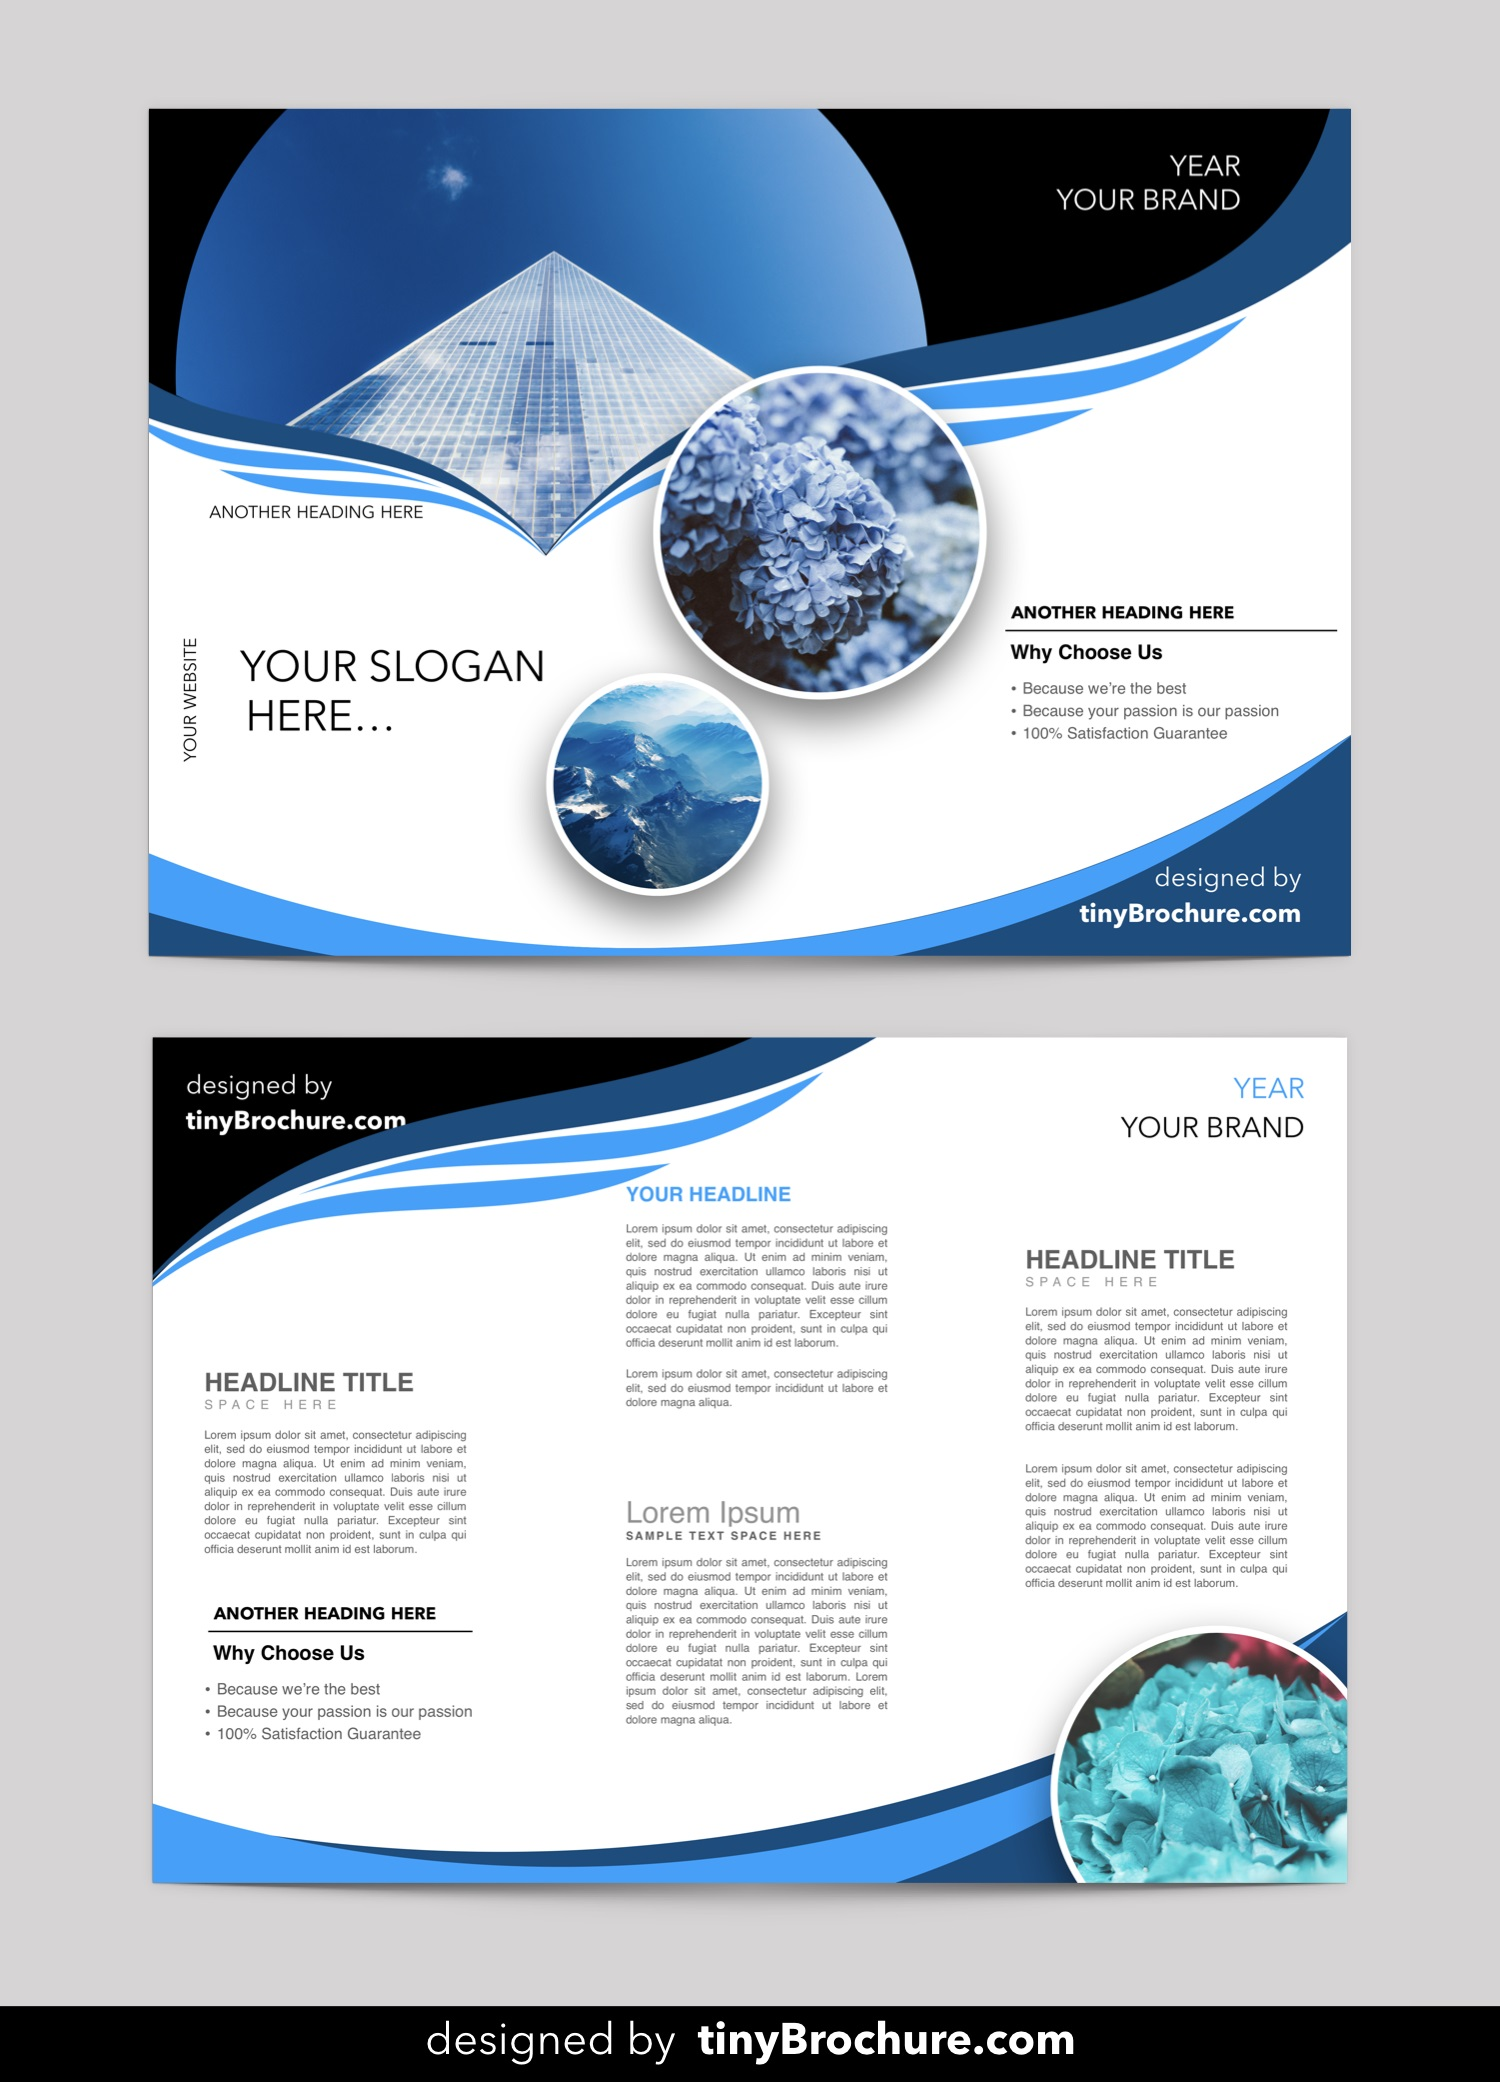 004 Sensational Free Download Flyer Template Photo  Templates Blank Leaflet Word PsdFull